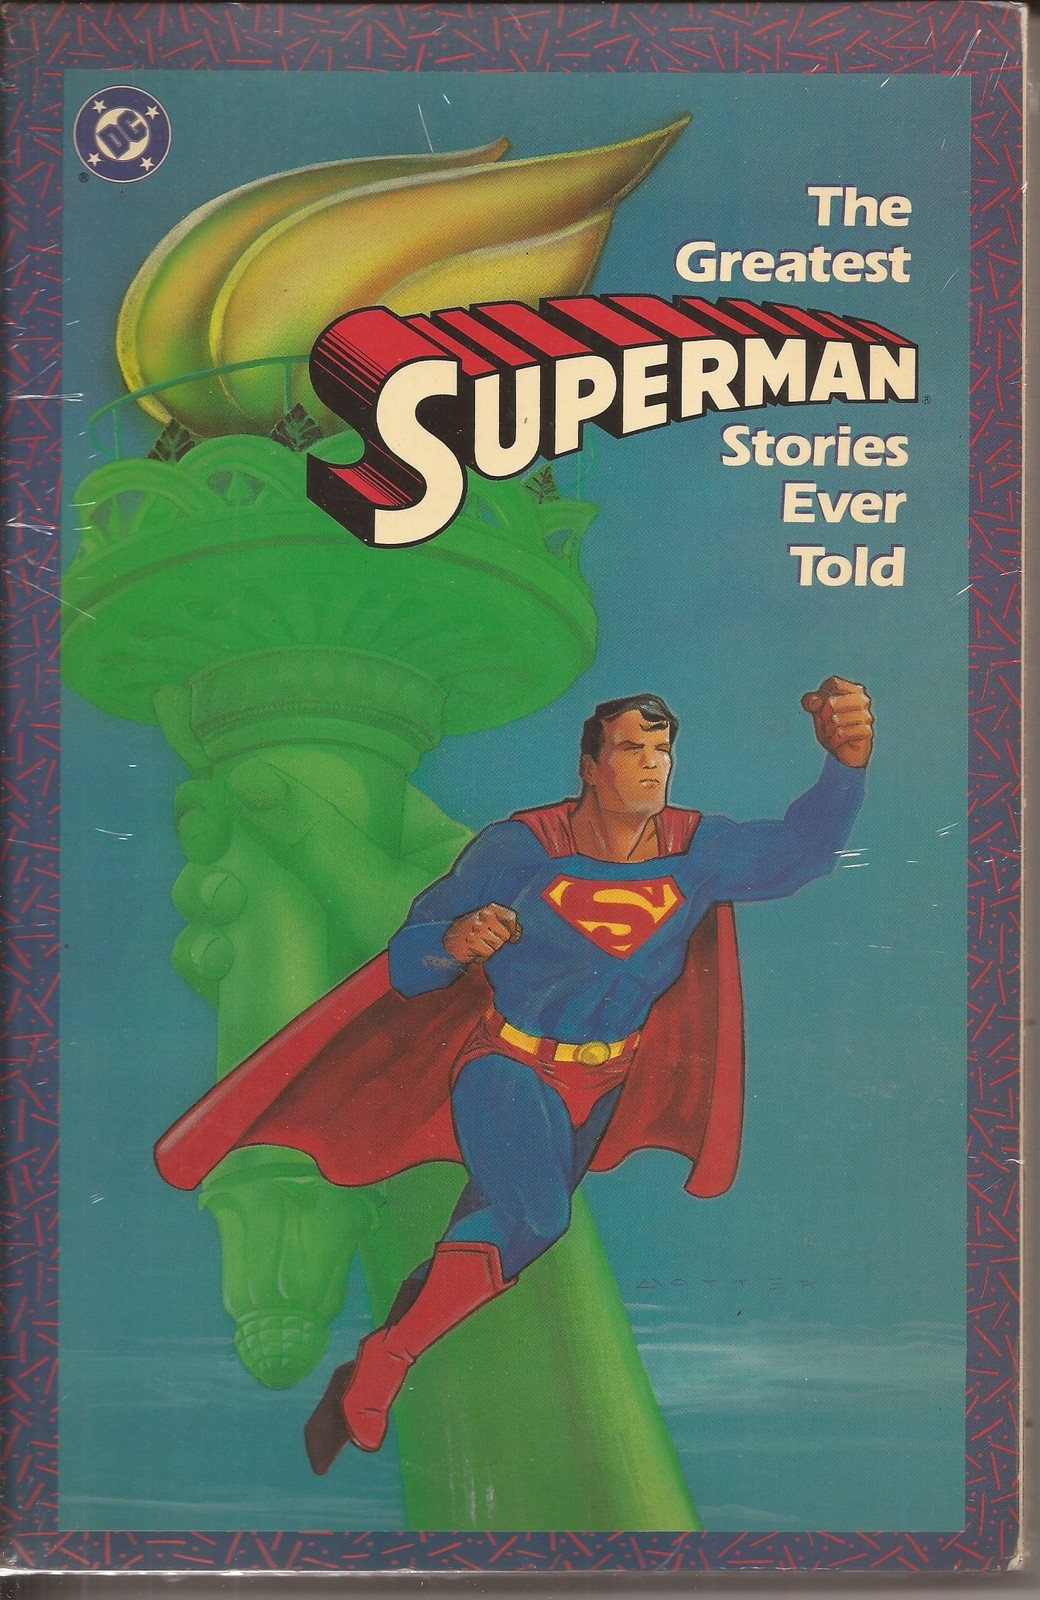 DC The Greatest Superman Stories Ever Told SC Clark Kent Metropolis Lois Lane